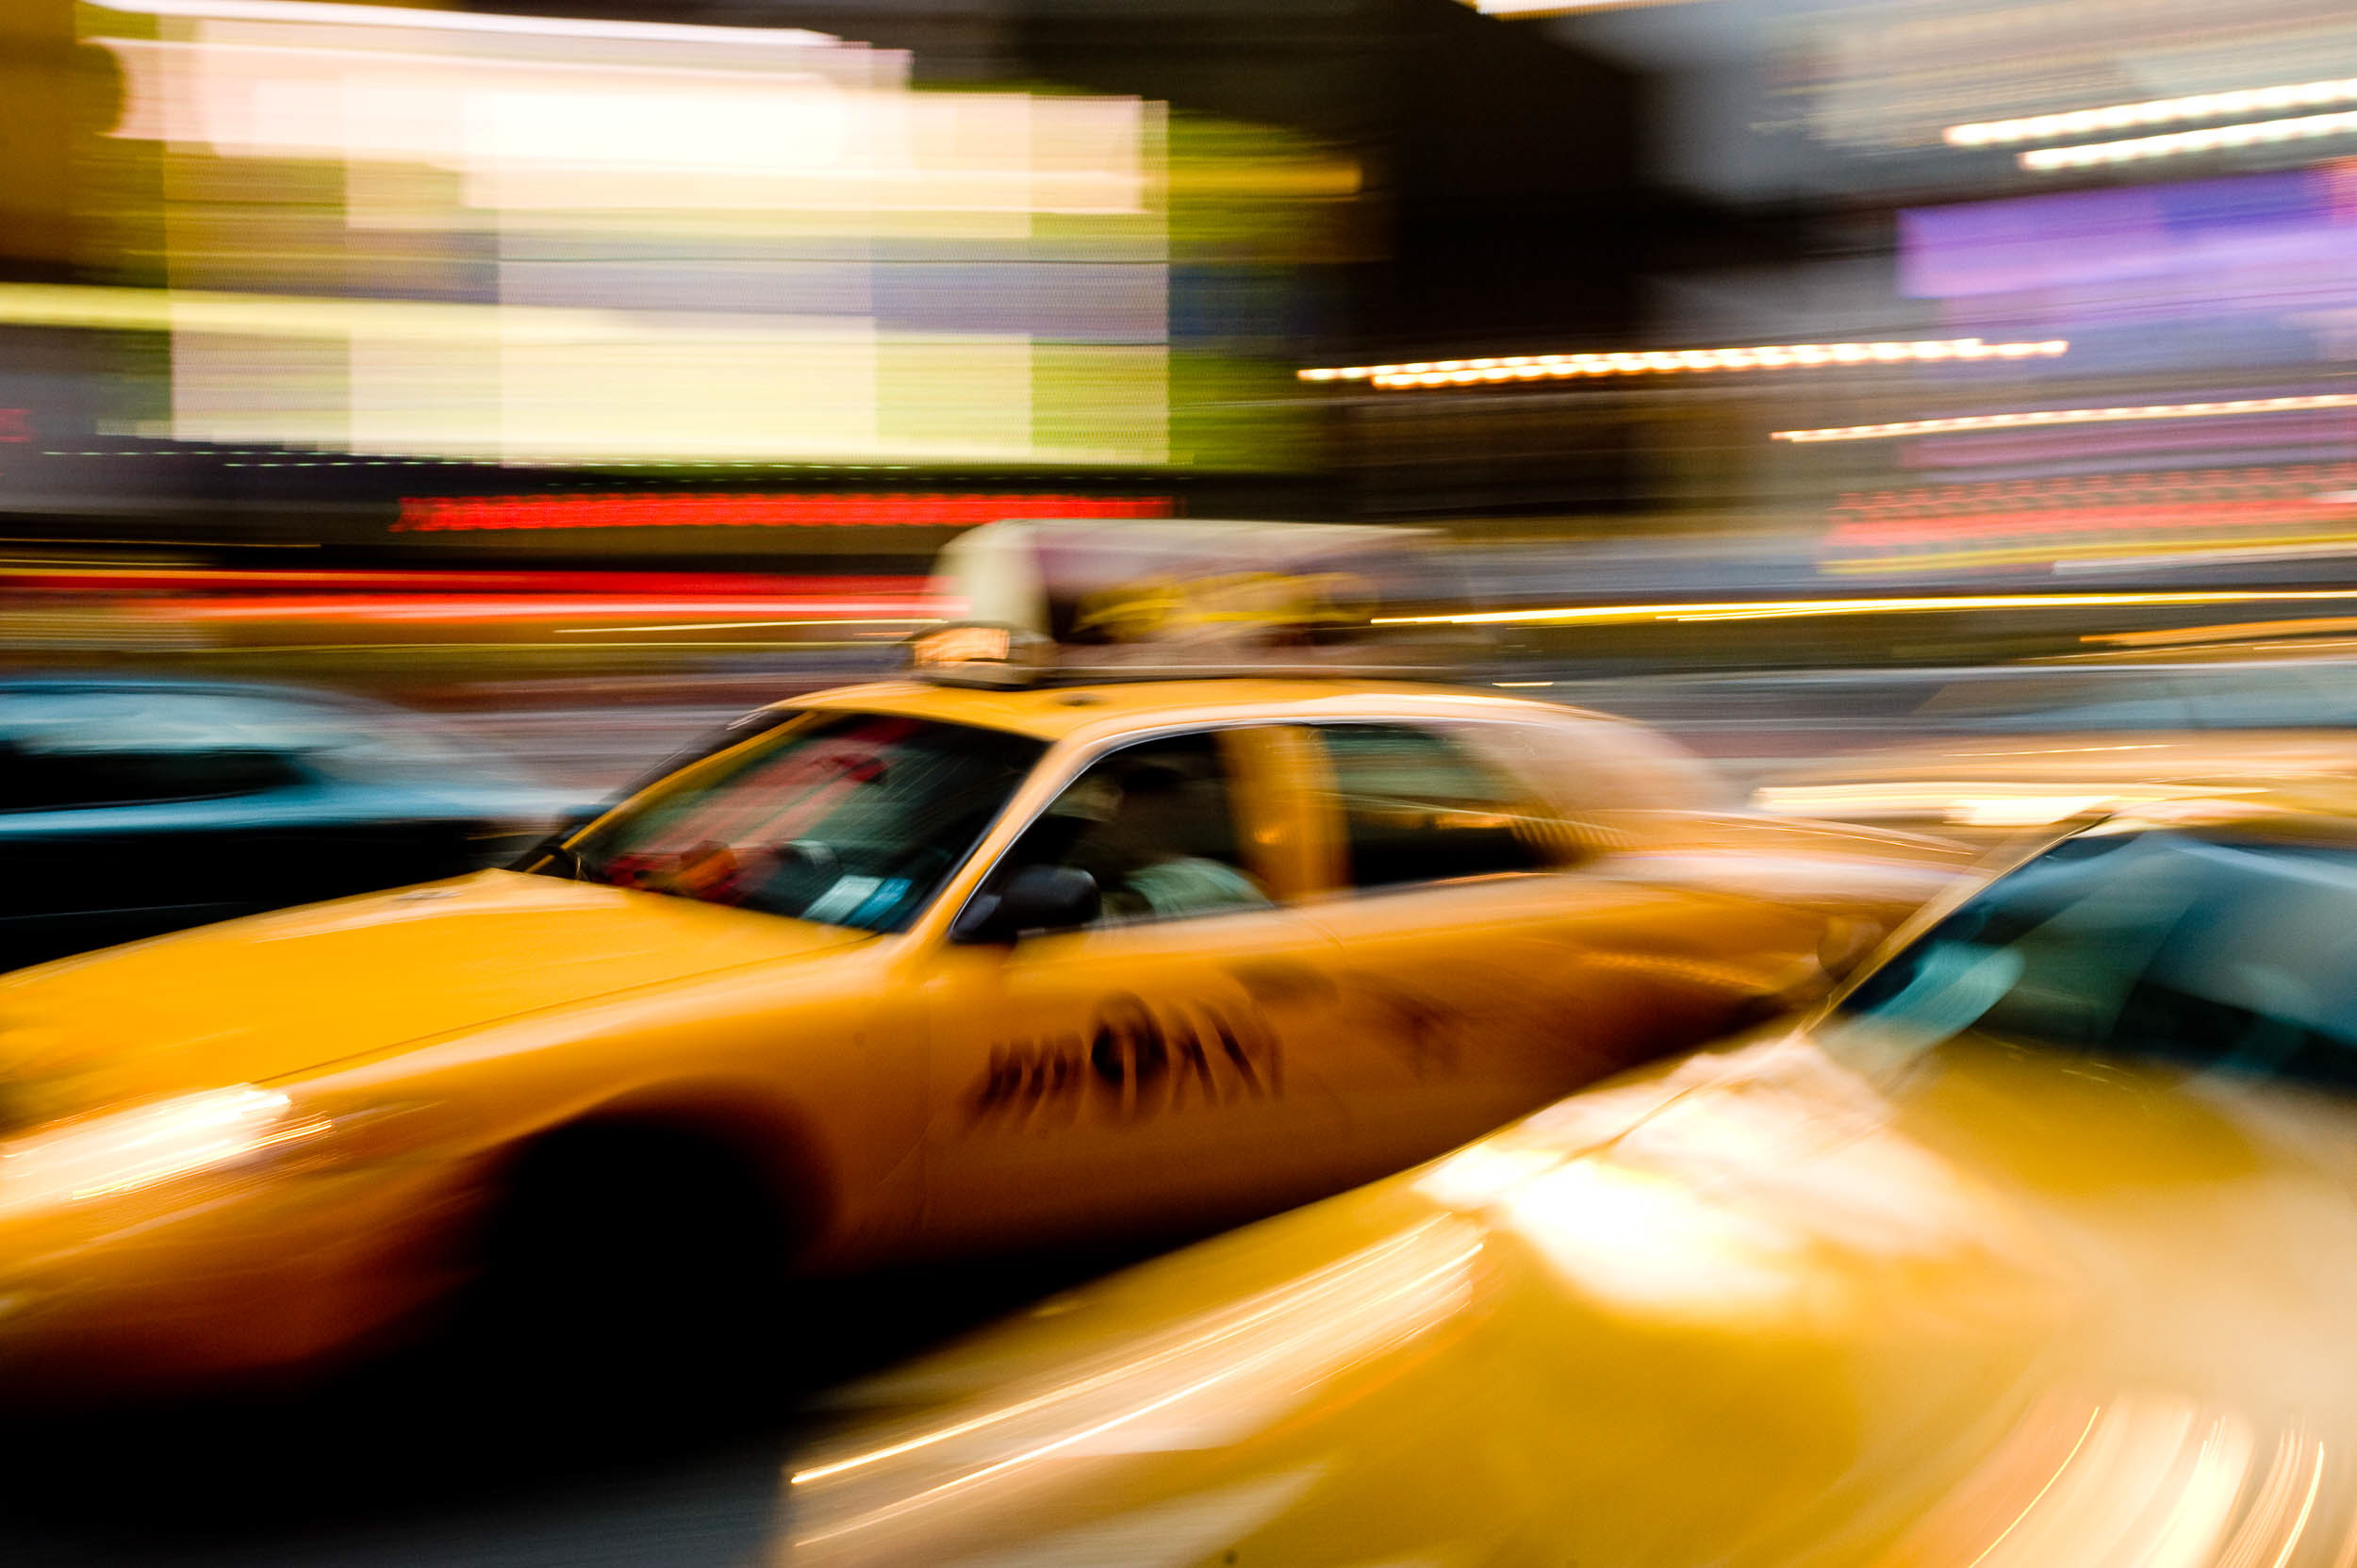 yellow-taxi-cab-car-blur-motion-movement-rush-times-square-travel-manhattan-new-york-city-usa-america